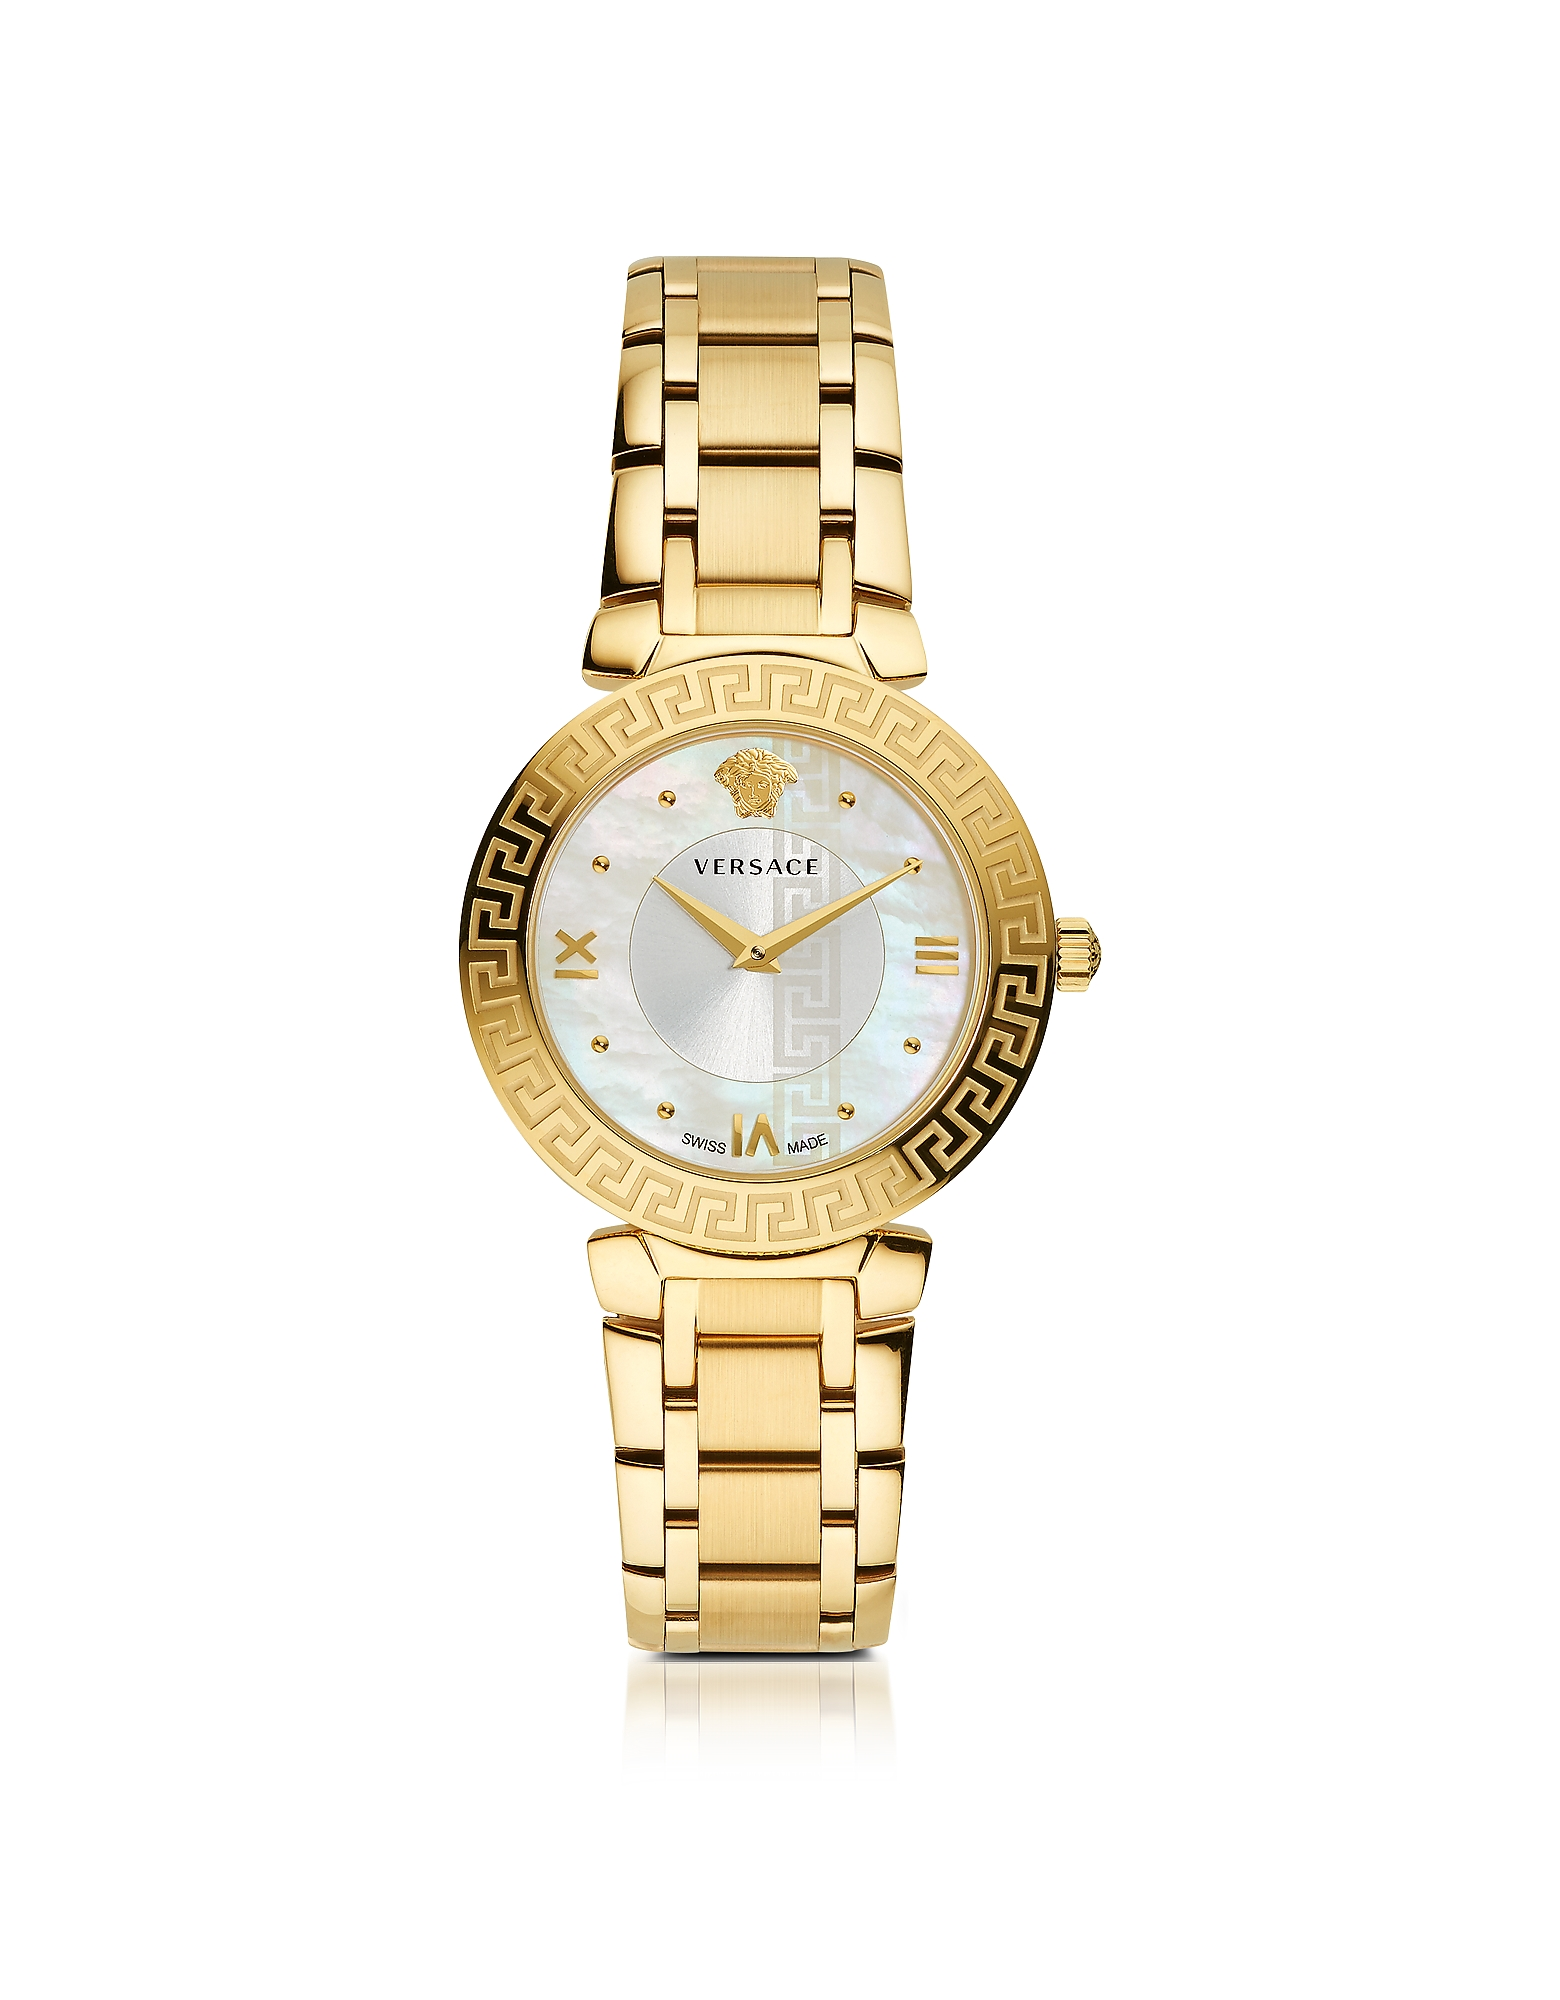 Versace Women's Watches, Daphnis PVD Gold Plated Women's Watch w/Greek Engraving